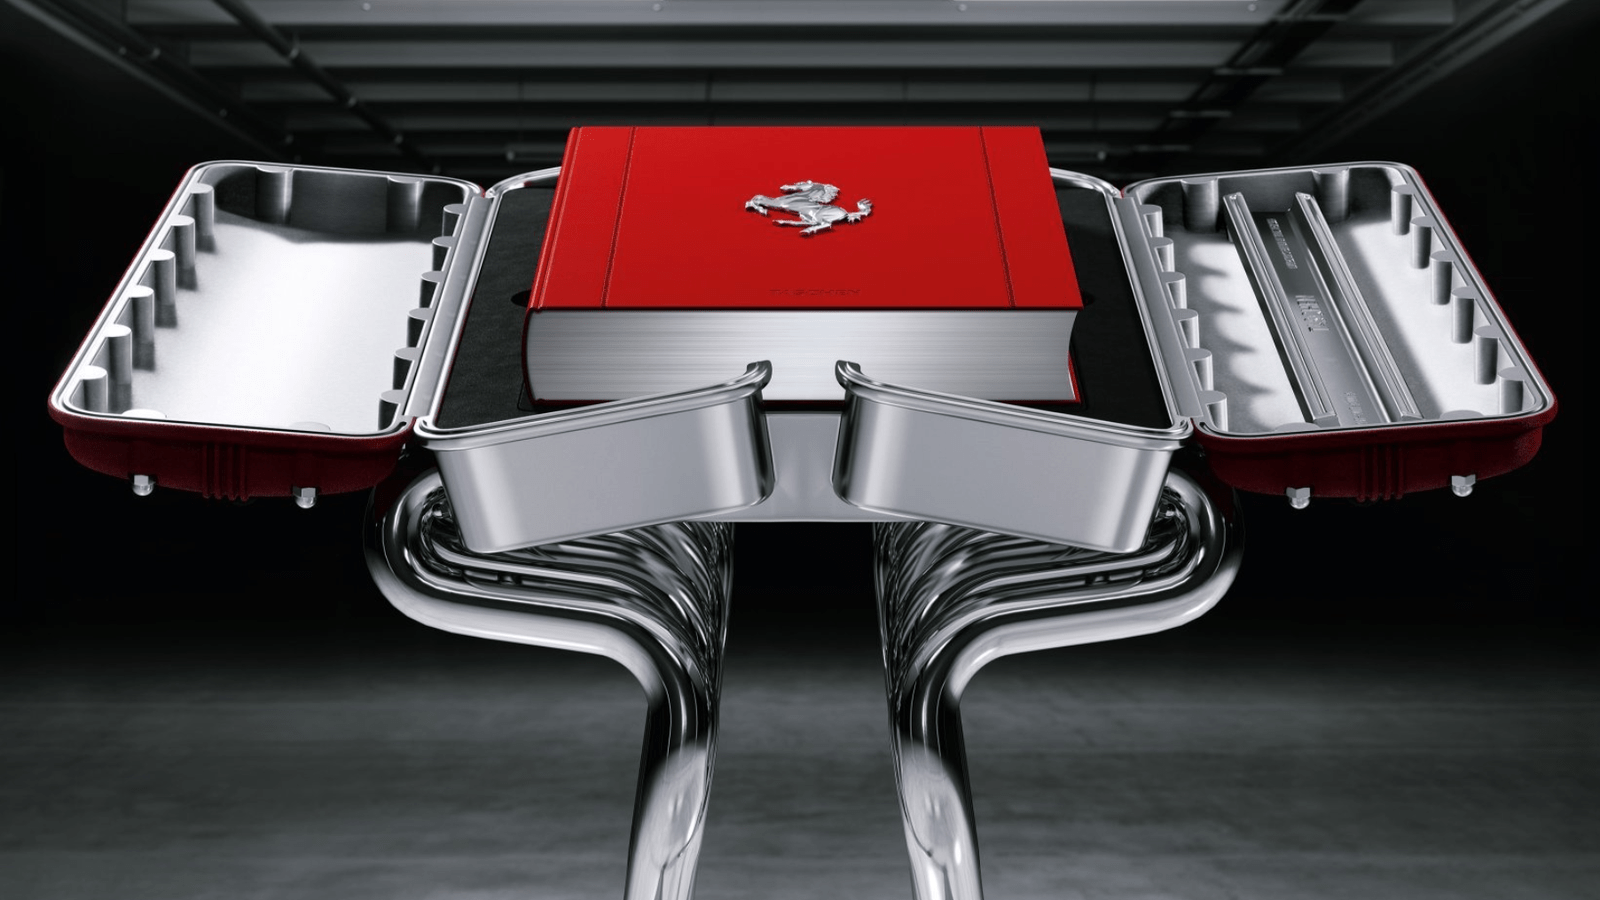 The Art Edition of Ferrari's book will cost the discernible collector a whopping £22,500